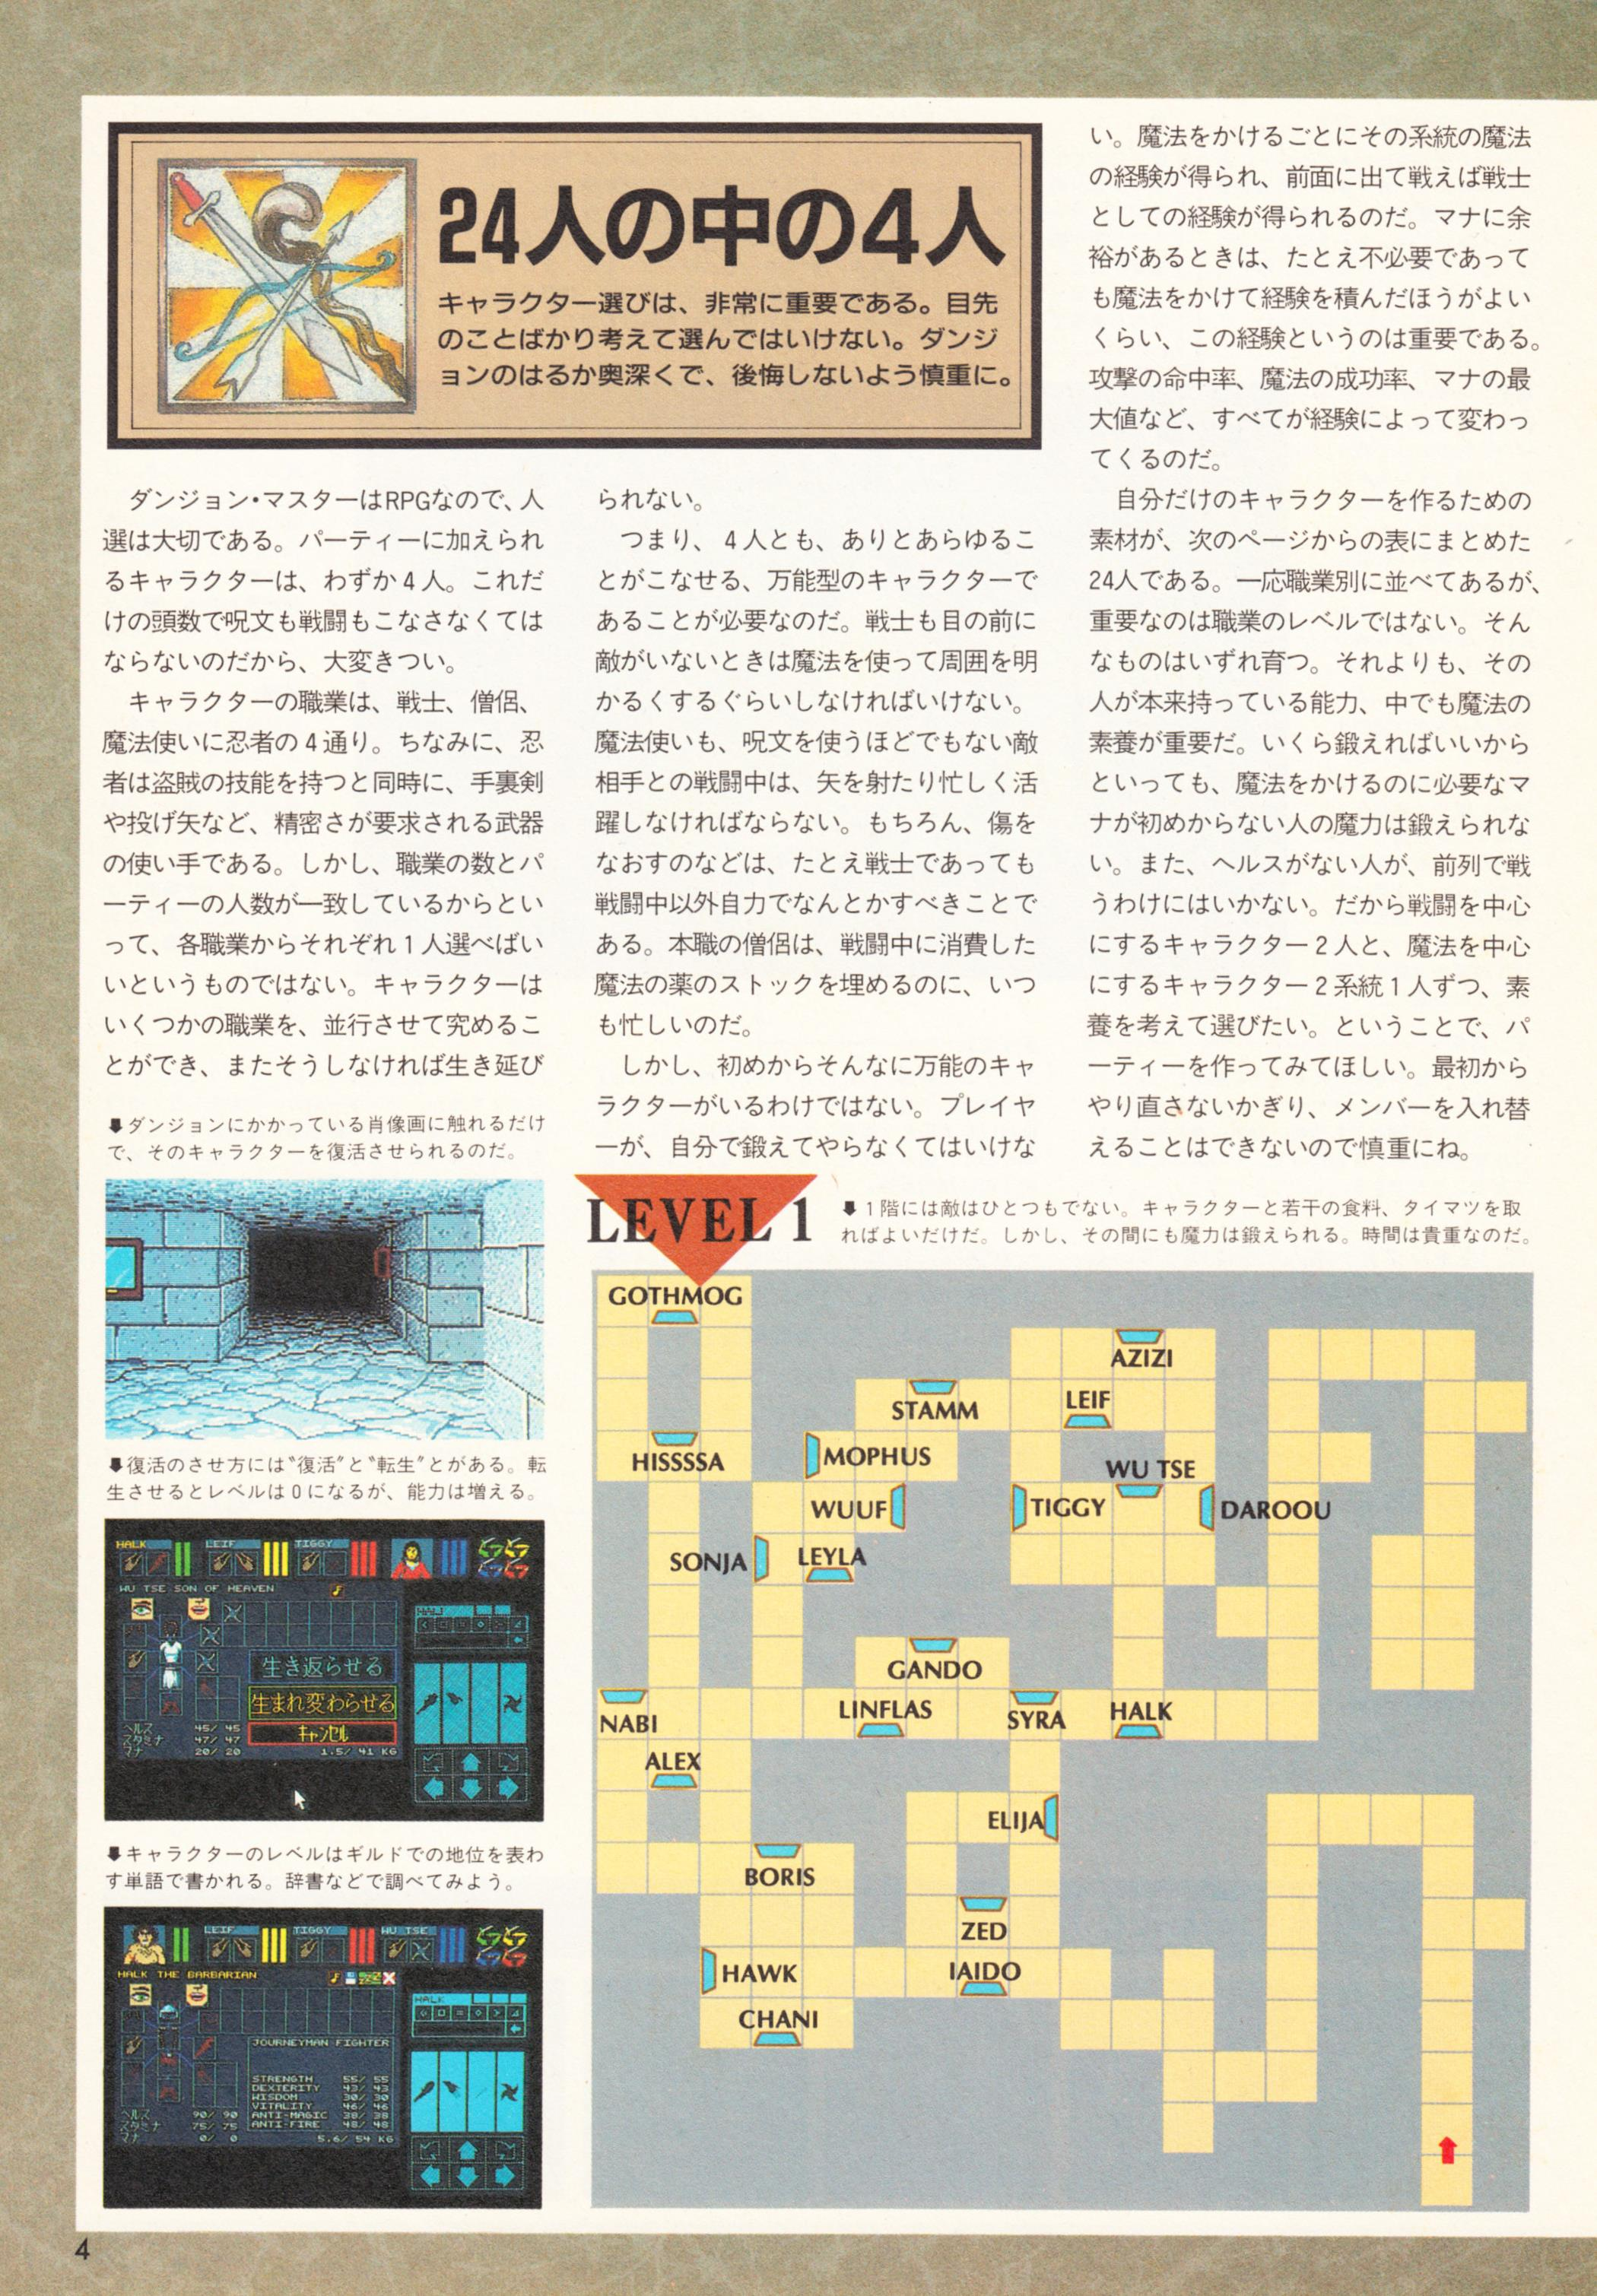 Special Supplement 2 - Dungeon Master Guide published in Japanese magazine 'Login', Vol 9 No 3 02 February 1990, Page 4